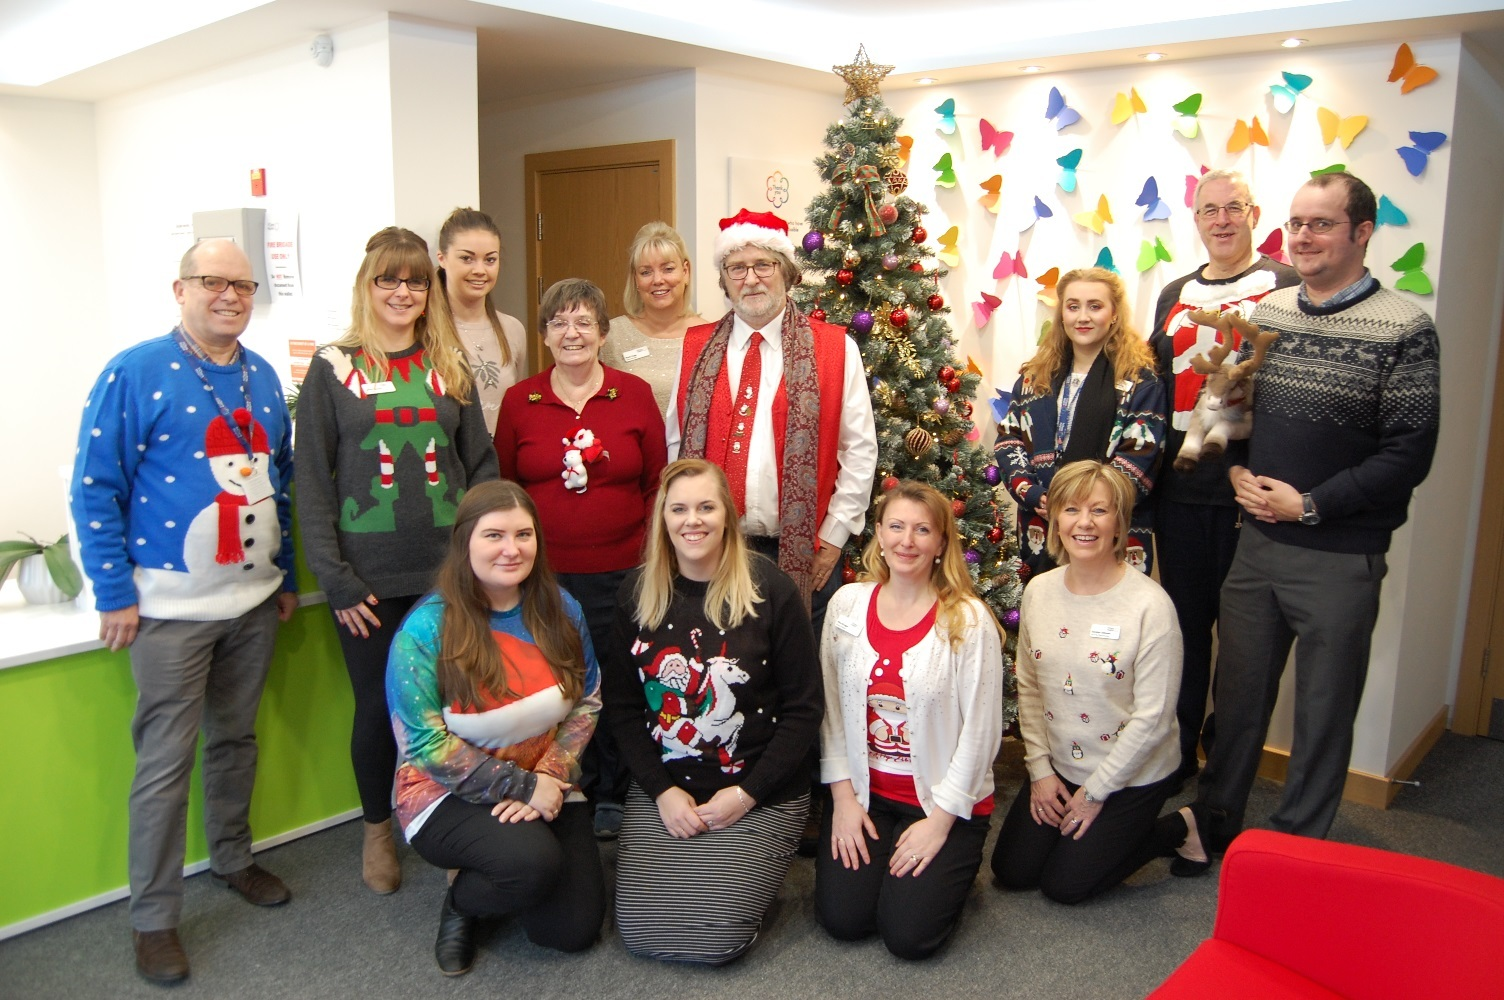 St Clare Hospice's Christmas jumper day